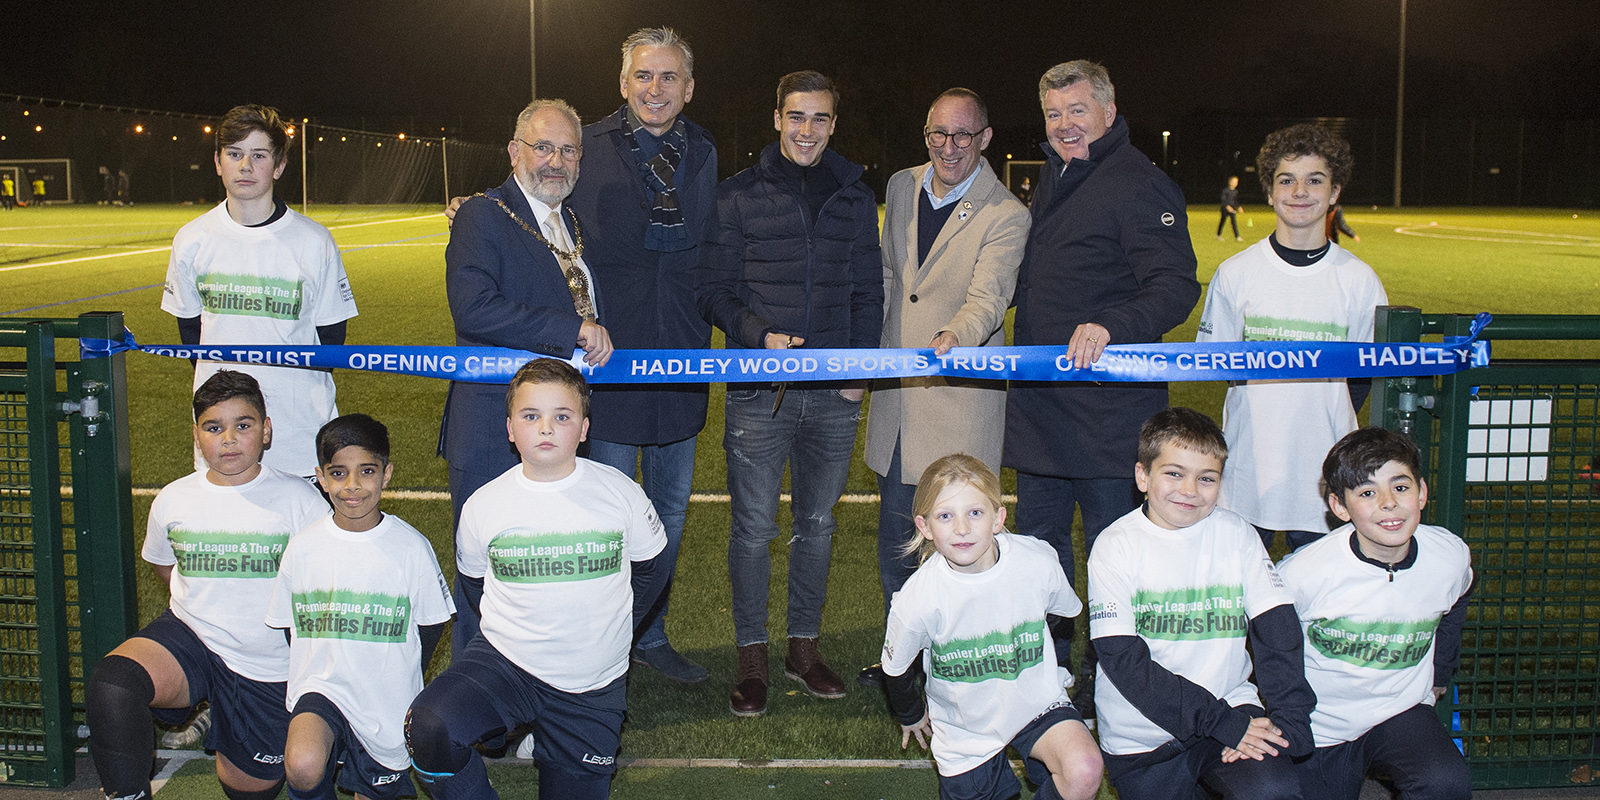 Geoff Shreeves, Harry Winks and Alan Smith unveil the brand new all-weather pitch at Hadley Wood